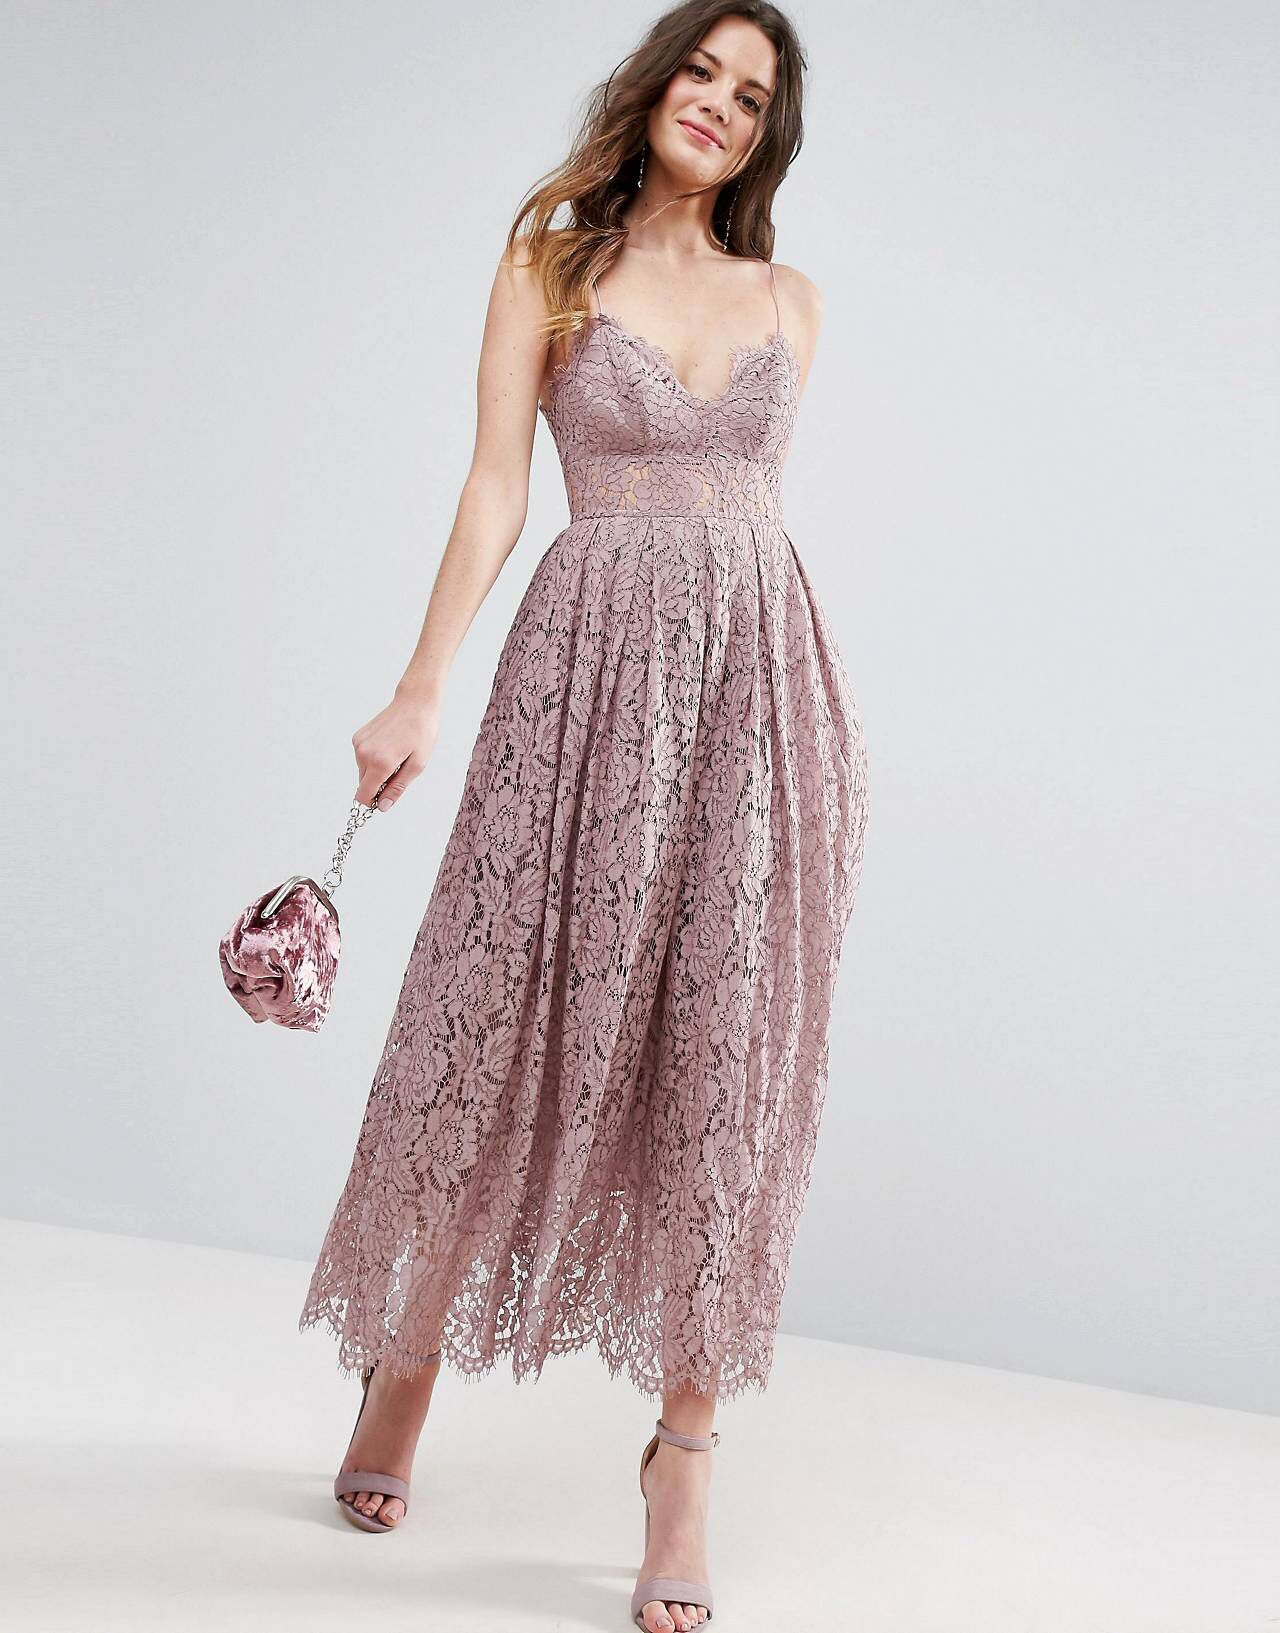 Love This From Asos Summer Dress Outfits Wedding Guest Outfit Summer Dress Trendy Dresses [ 1633 x 1280 Pixel ]